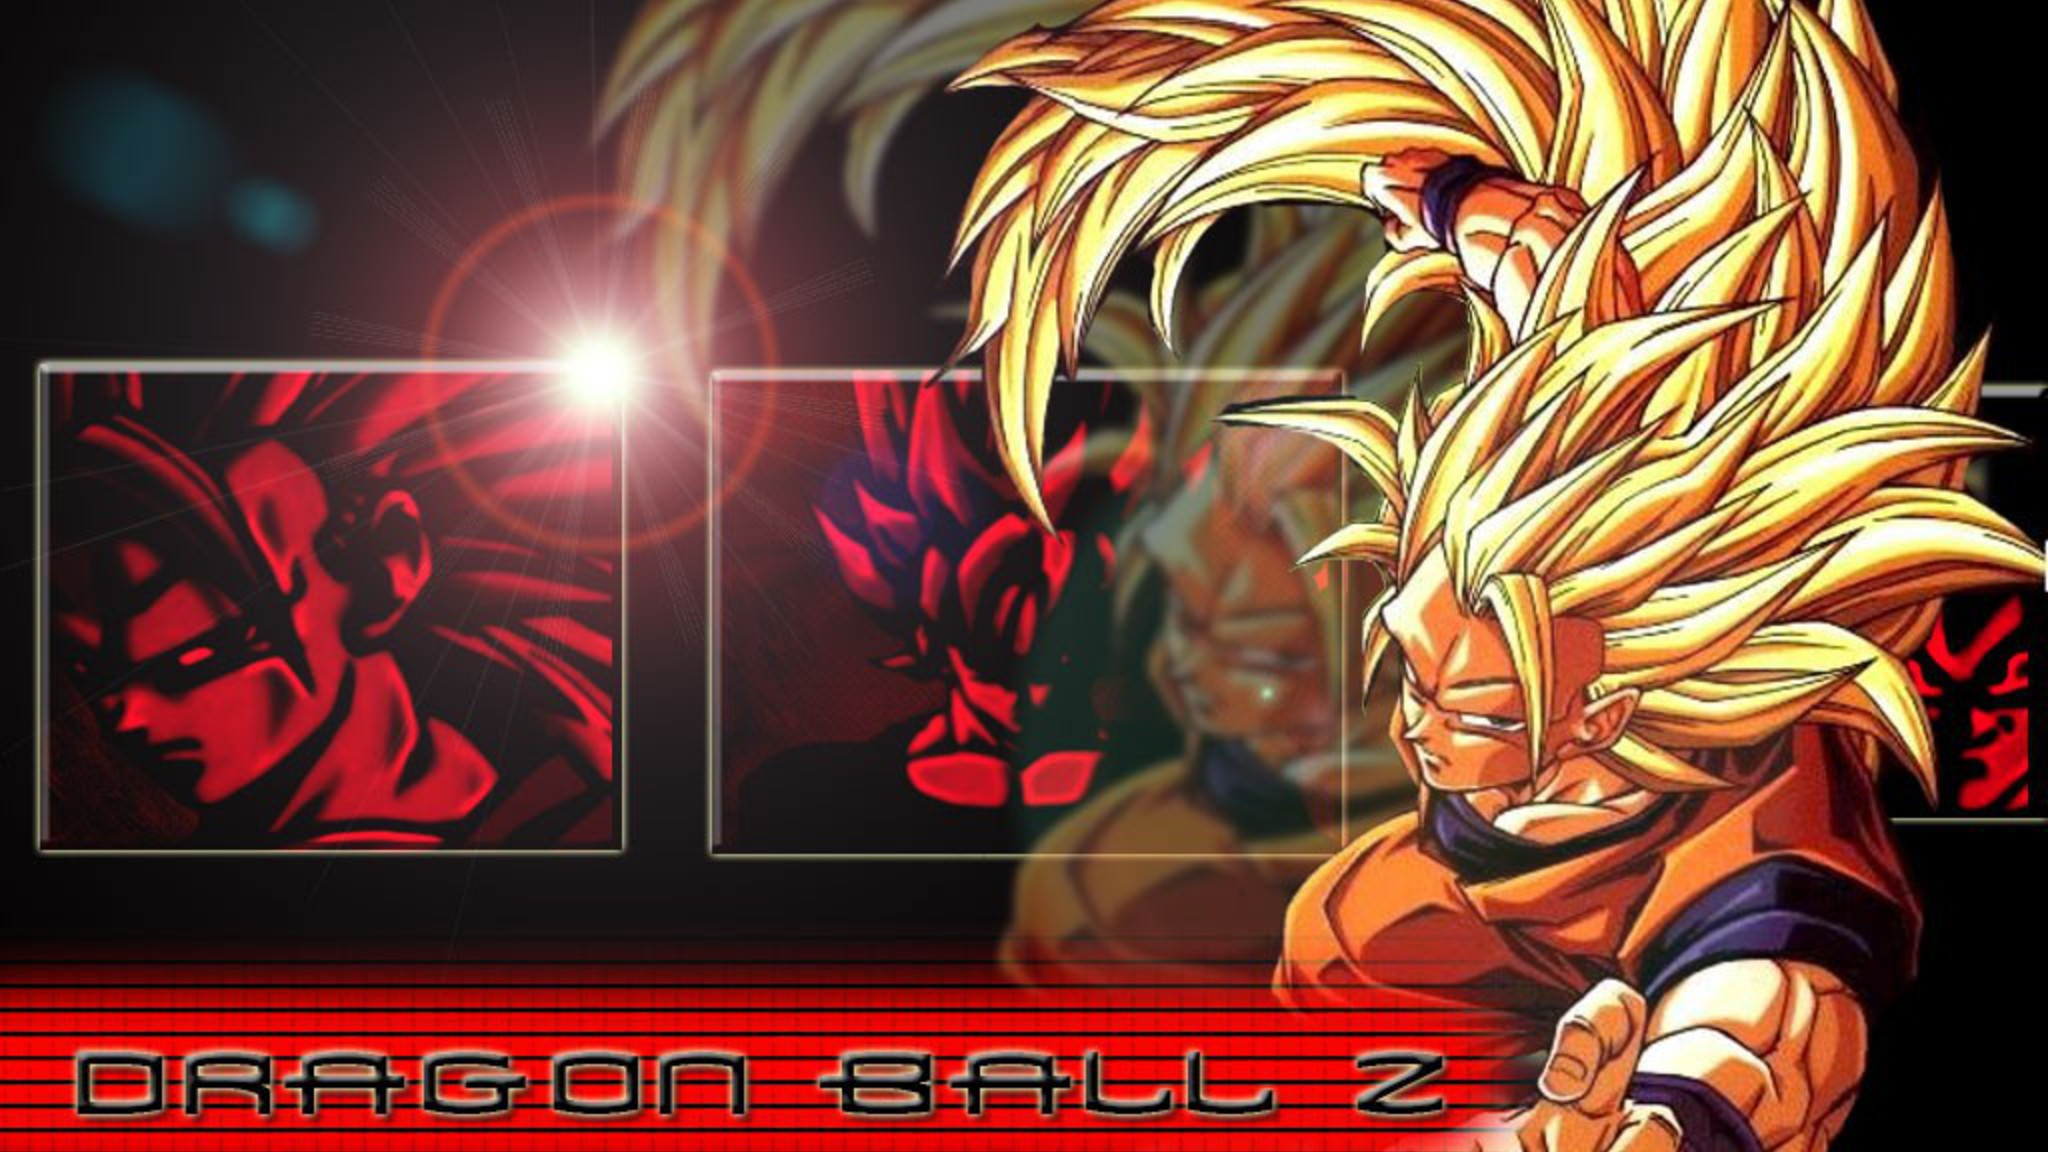 Son goku dragon ball z ssj wallpaper - Dragon ball z goku son ...